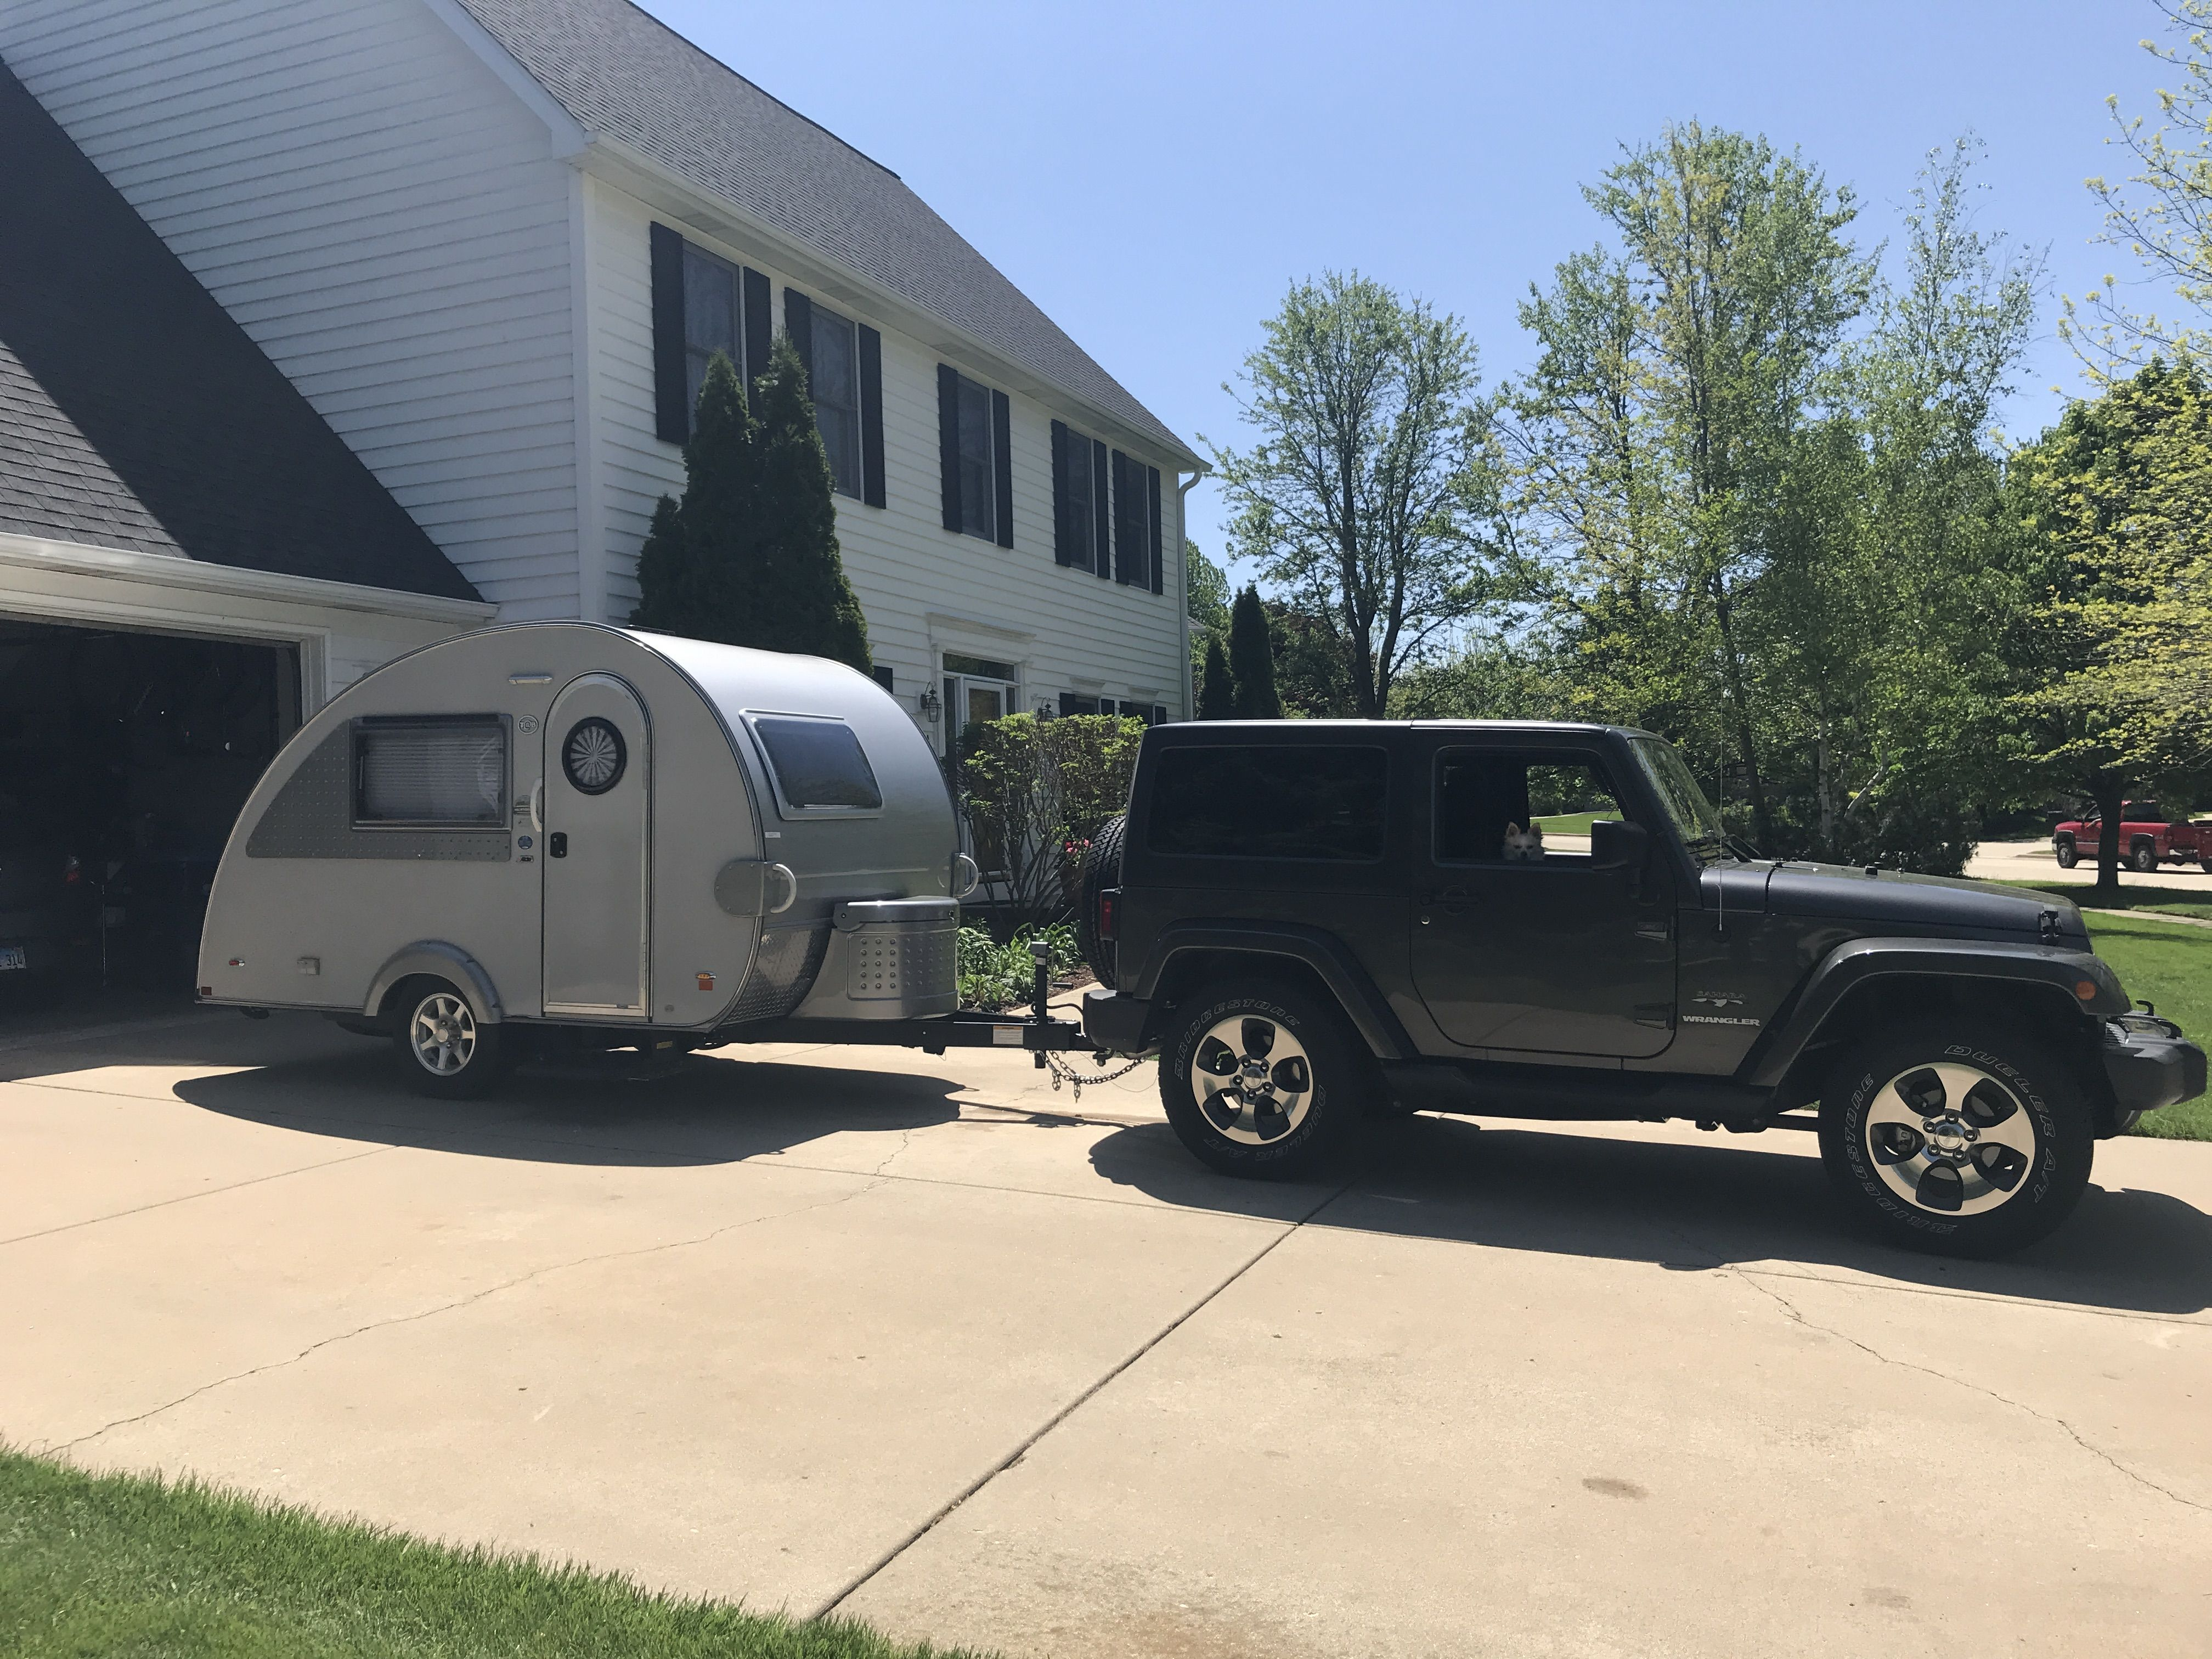 Pin by Aline Click on TB Camping Recreational vehicles